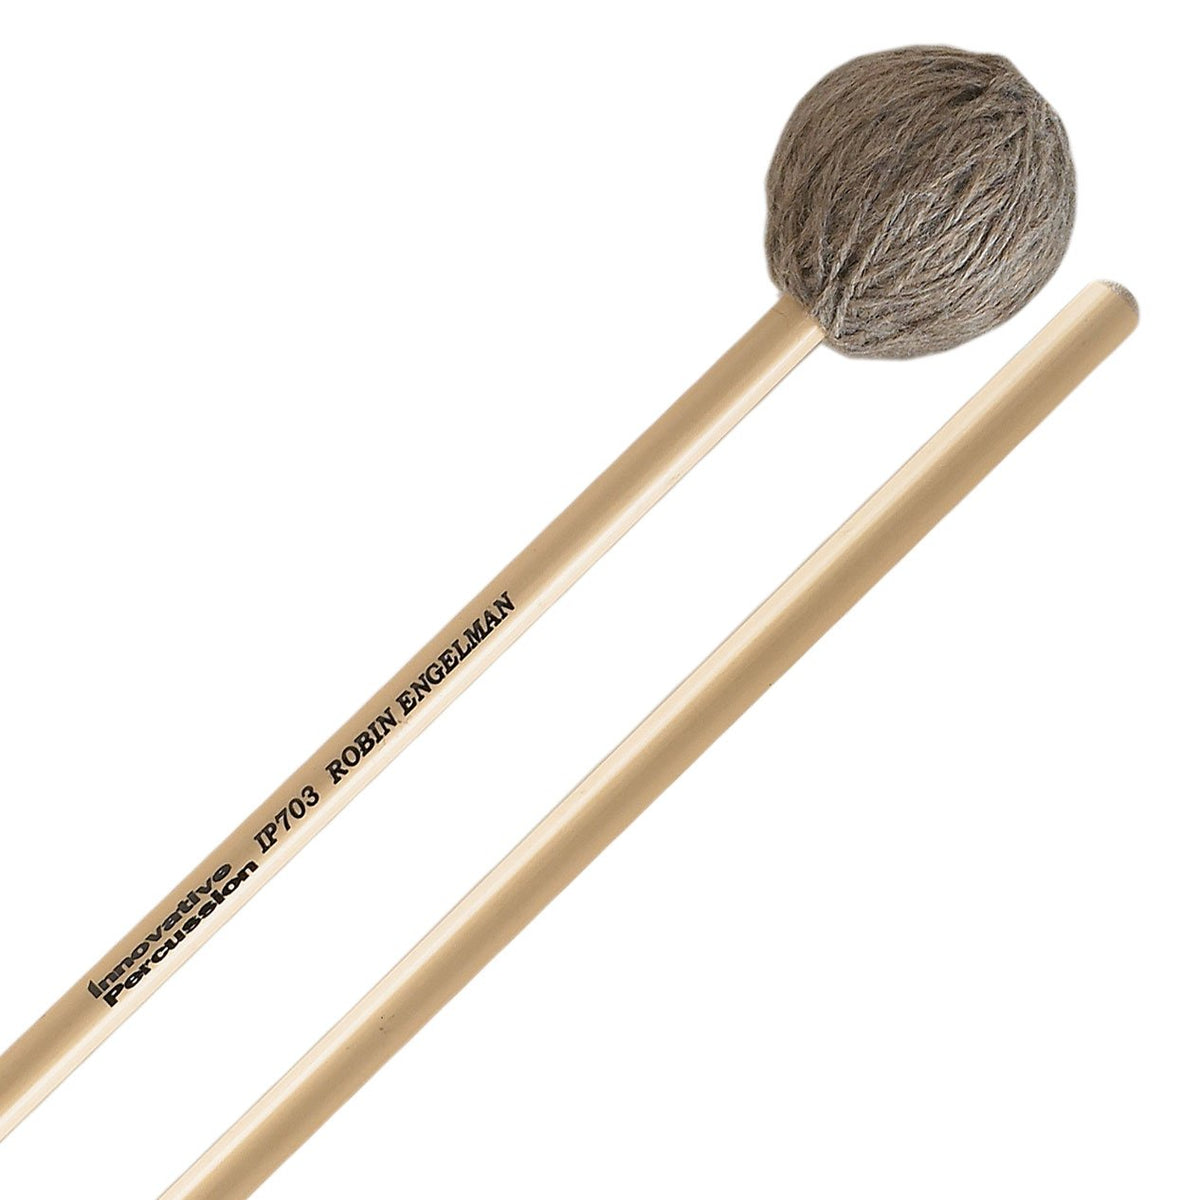 Innovative Percussion - Robin Engelman Series Concert Mallets-Percussion-Innovative Percussion-IP703: Medium/Alto Voice-Music Elements